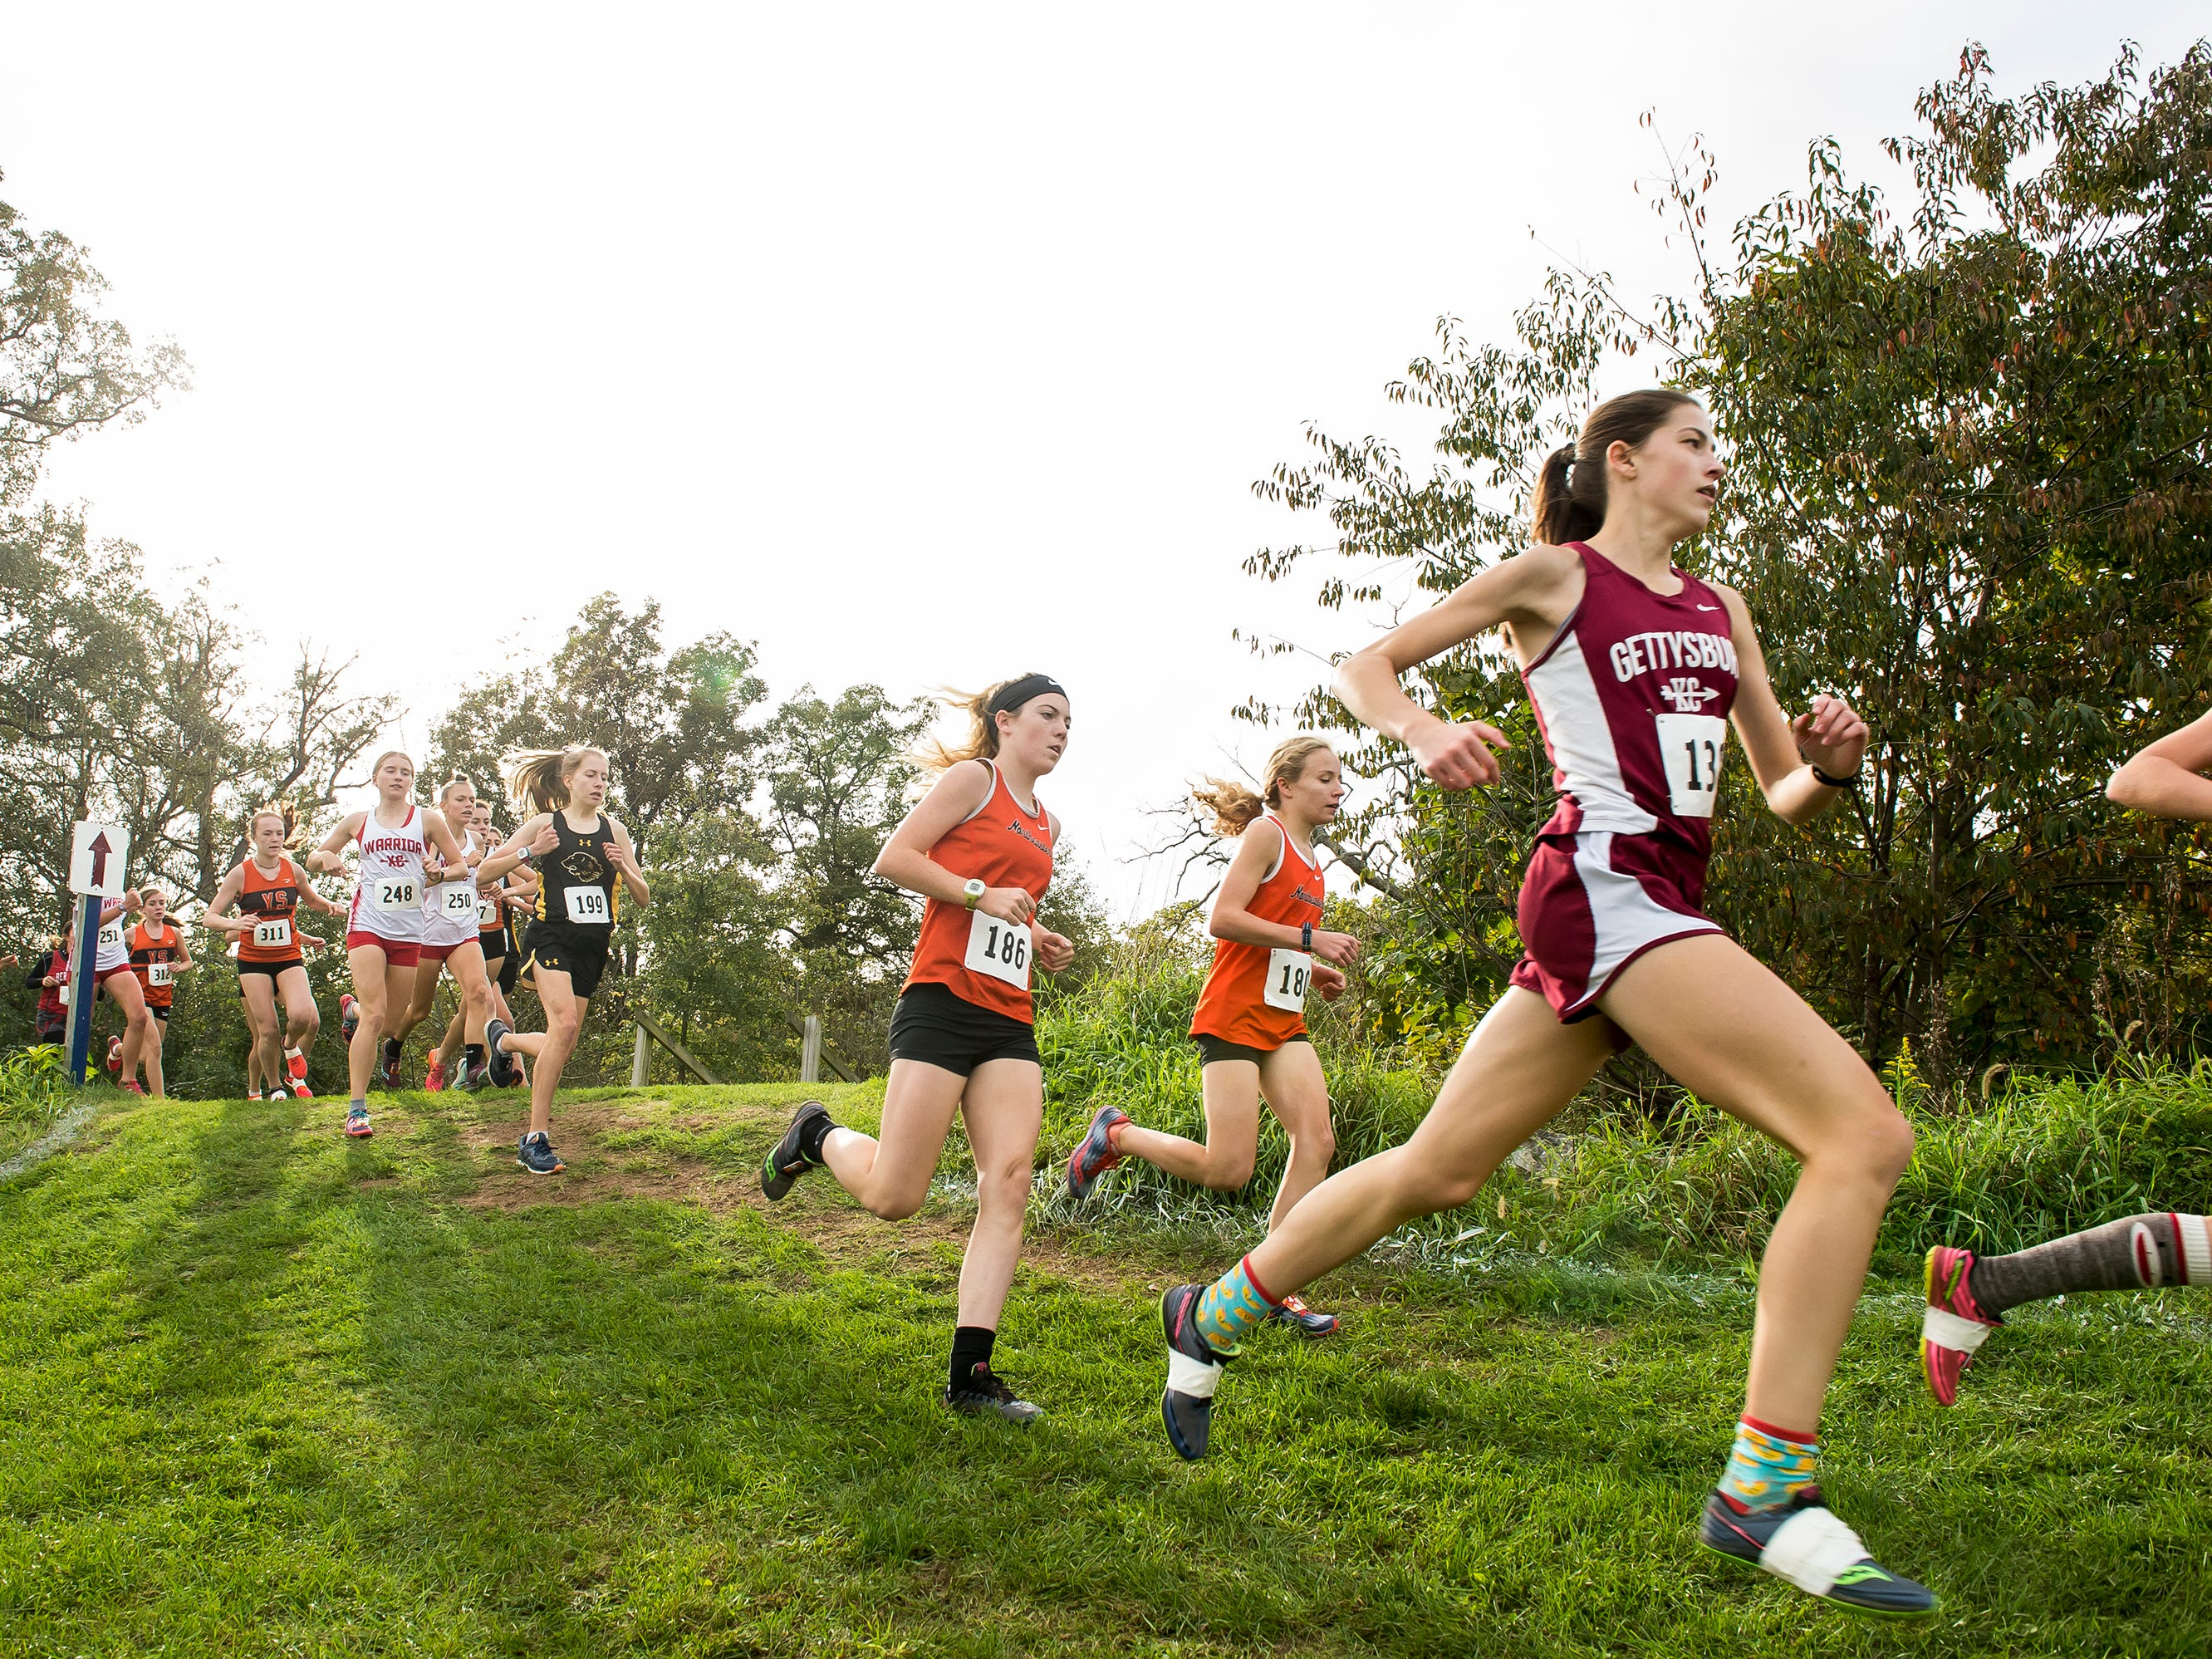 Runners compete in the YAIAA cross country championships at Gettysburg Area High School Tuesday, October 16, 2018.